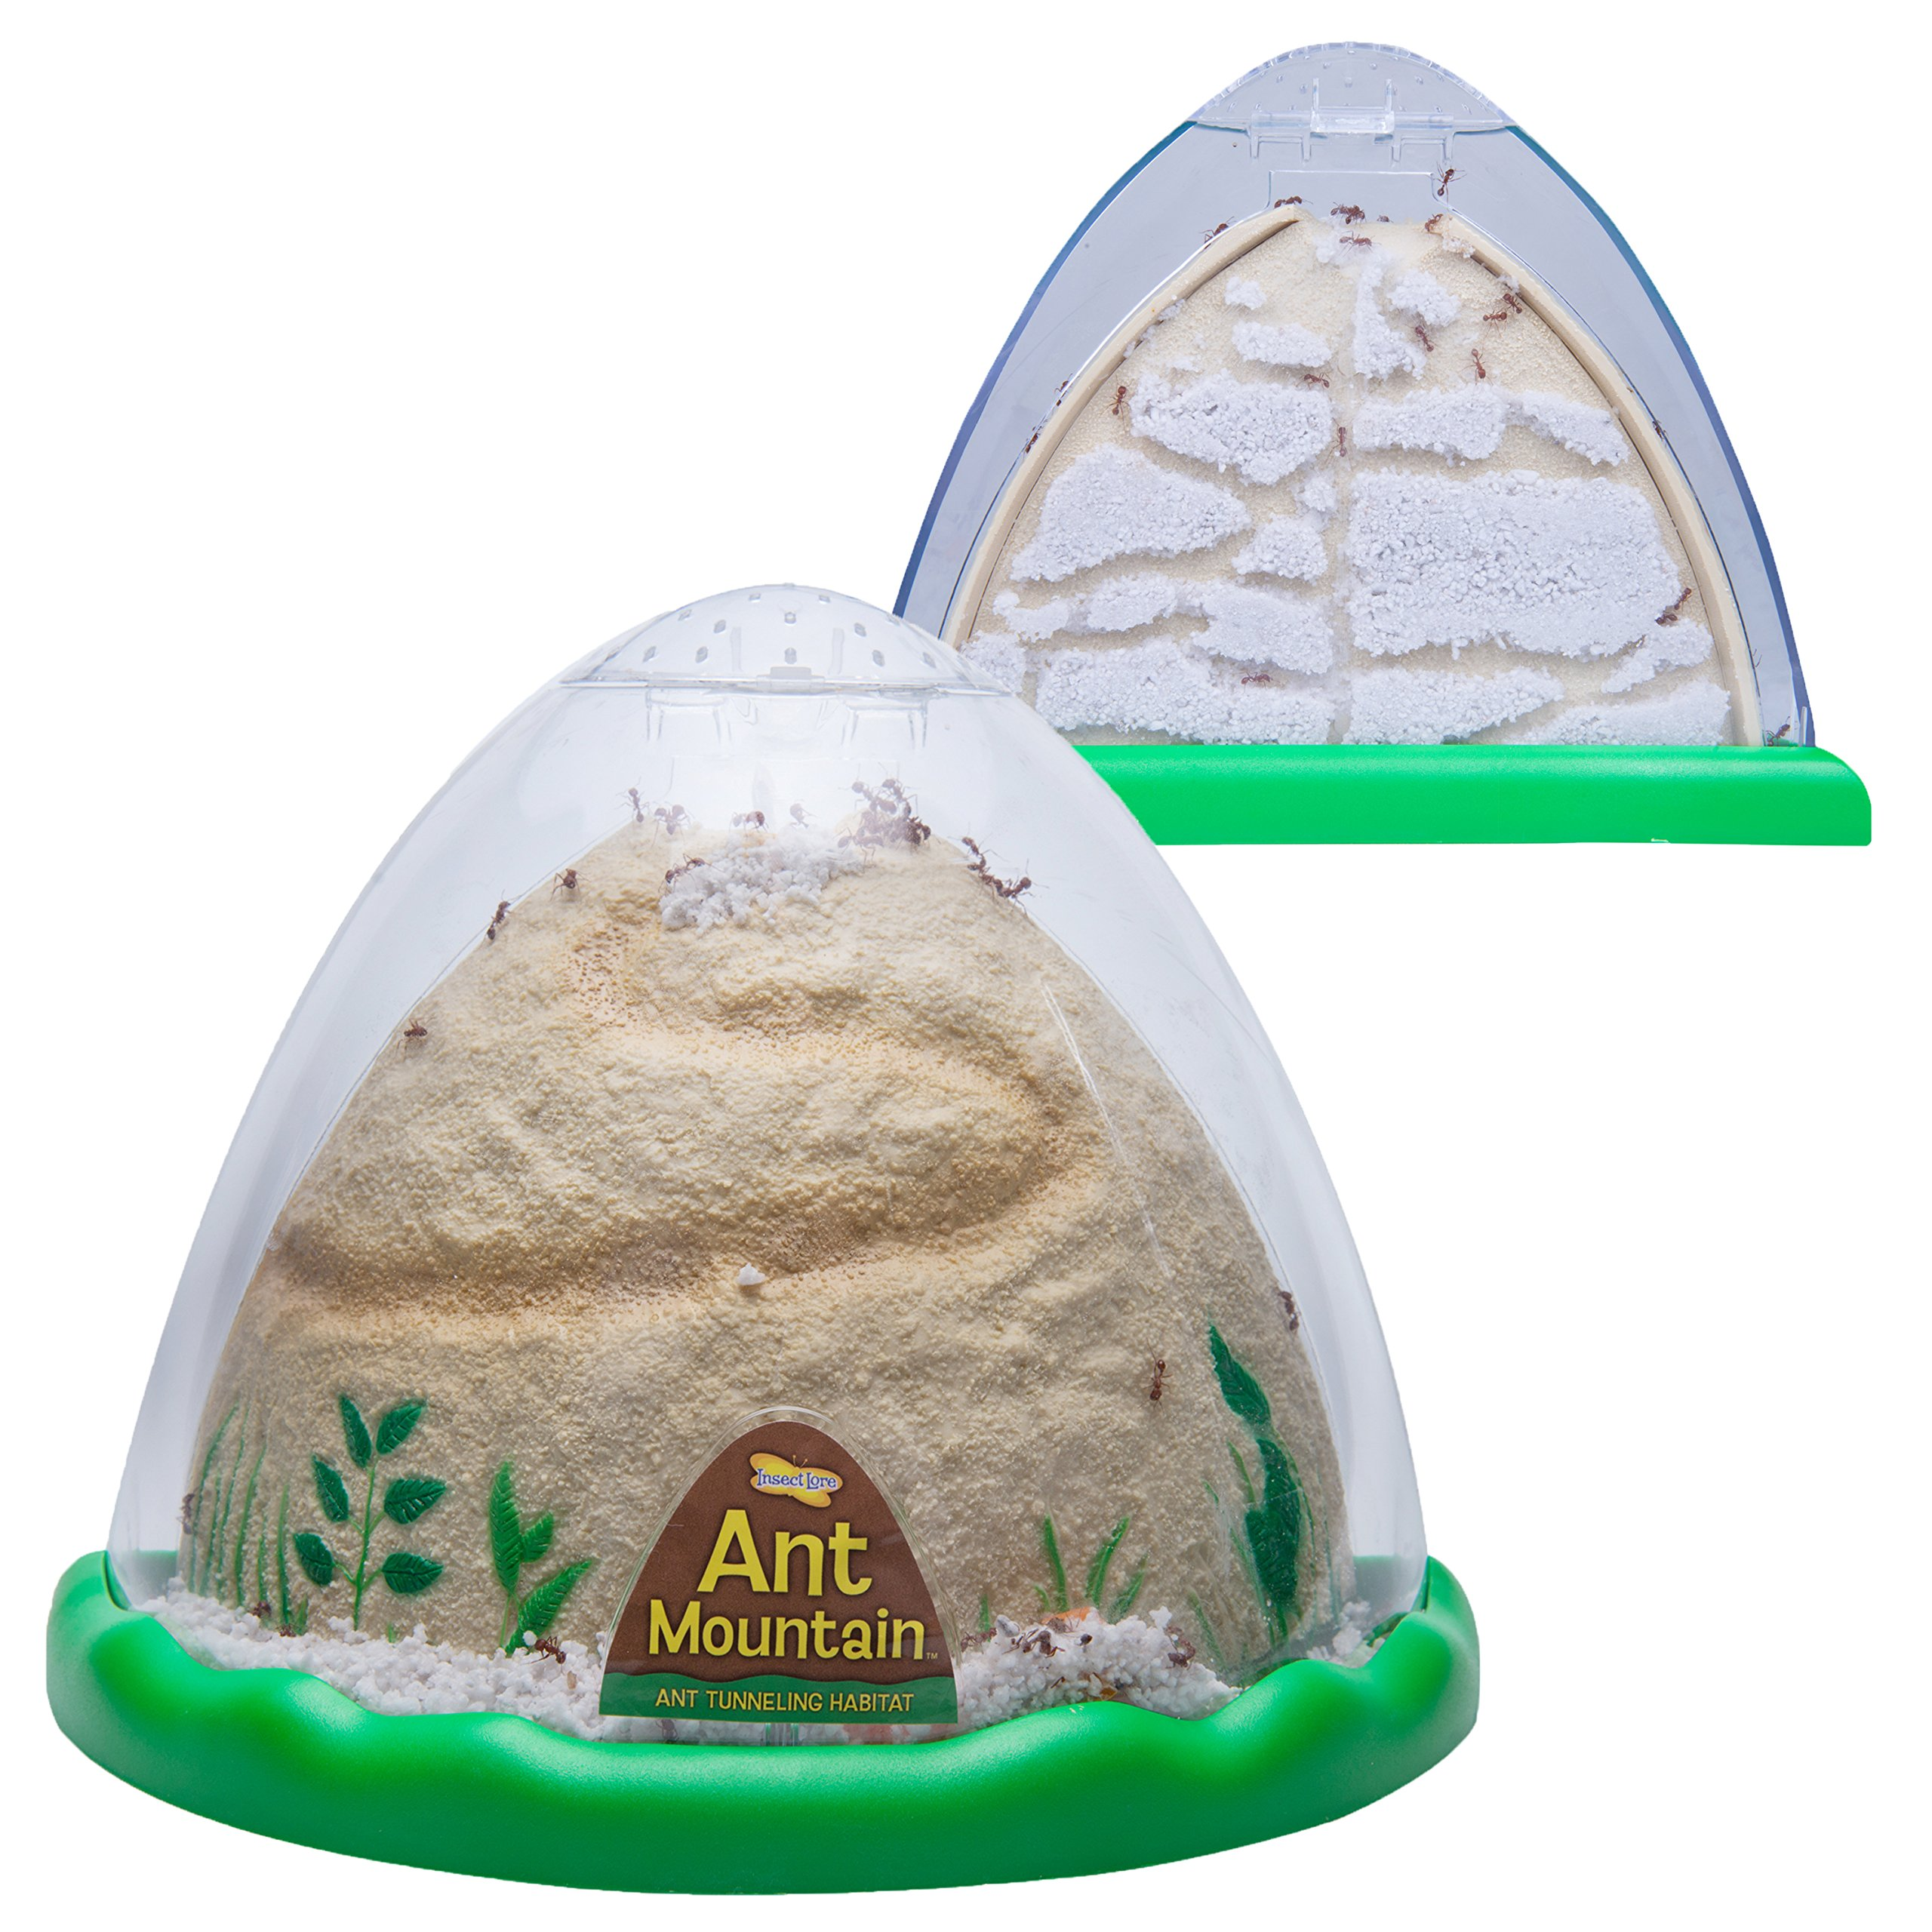 Insect Lore Ant Farm - Two Sided Ant Mountain- Includes Habitat, Sand And Voucher for Live Ants by Insect Lore